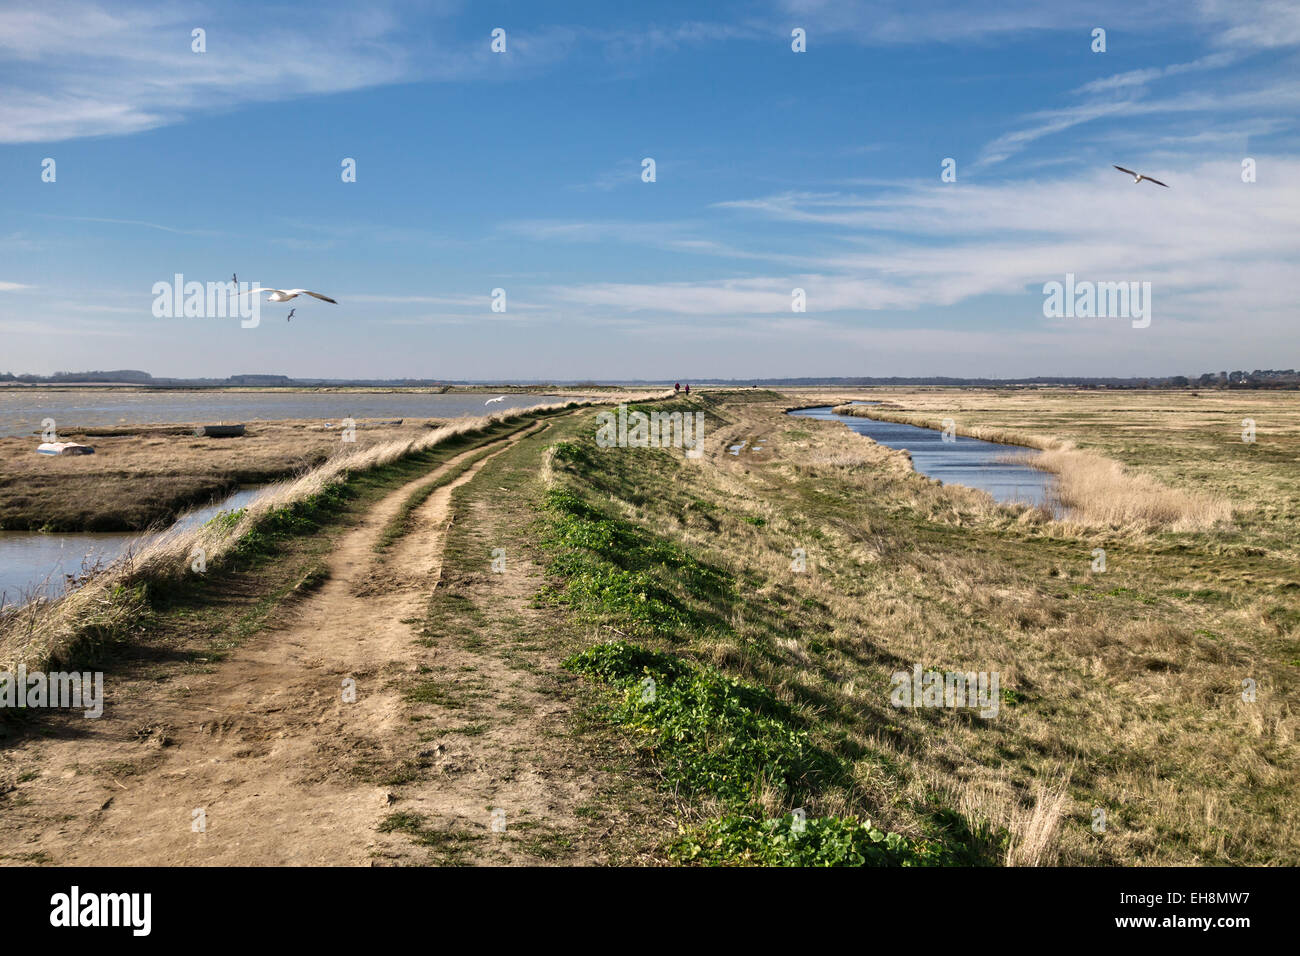 Aldeburgh, Suffolk, UK. An embankment along the edge of the River Alde protects the town from flooding - Stock Image